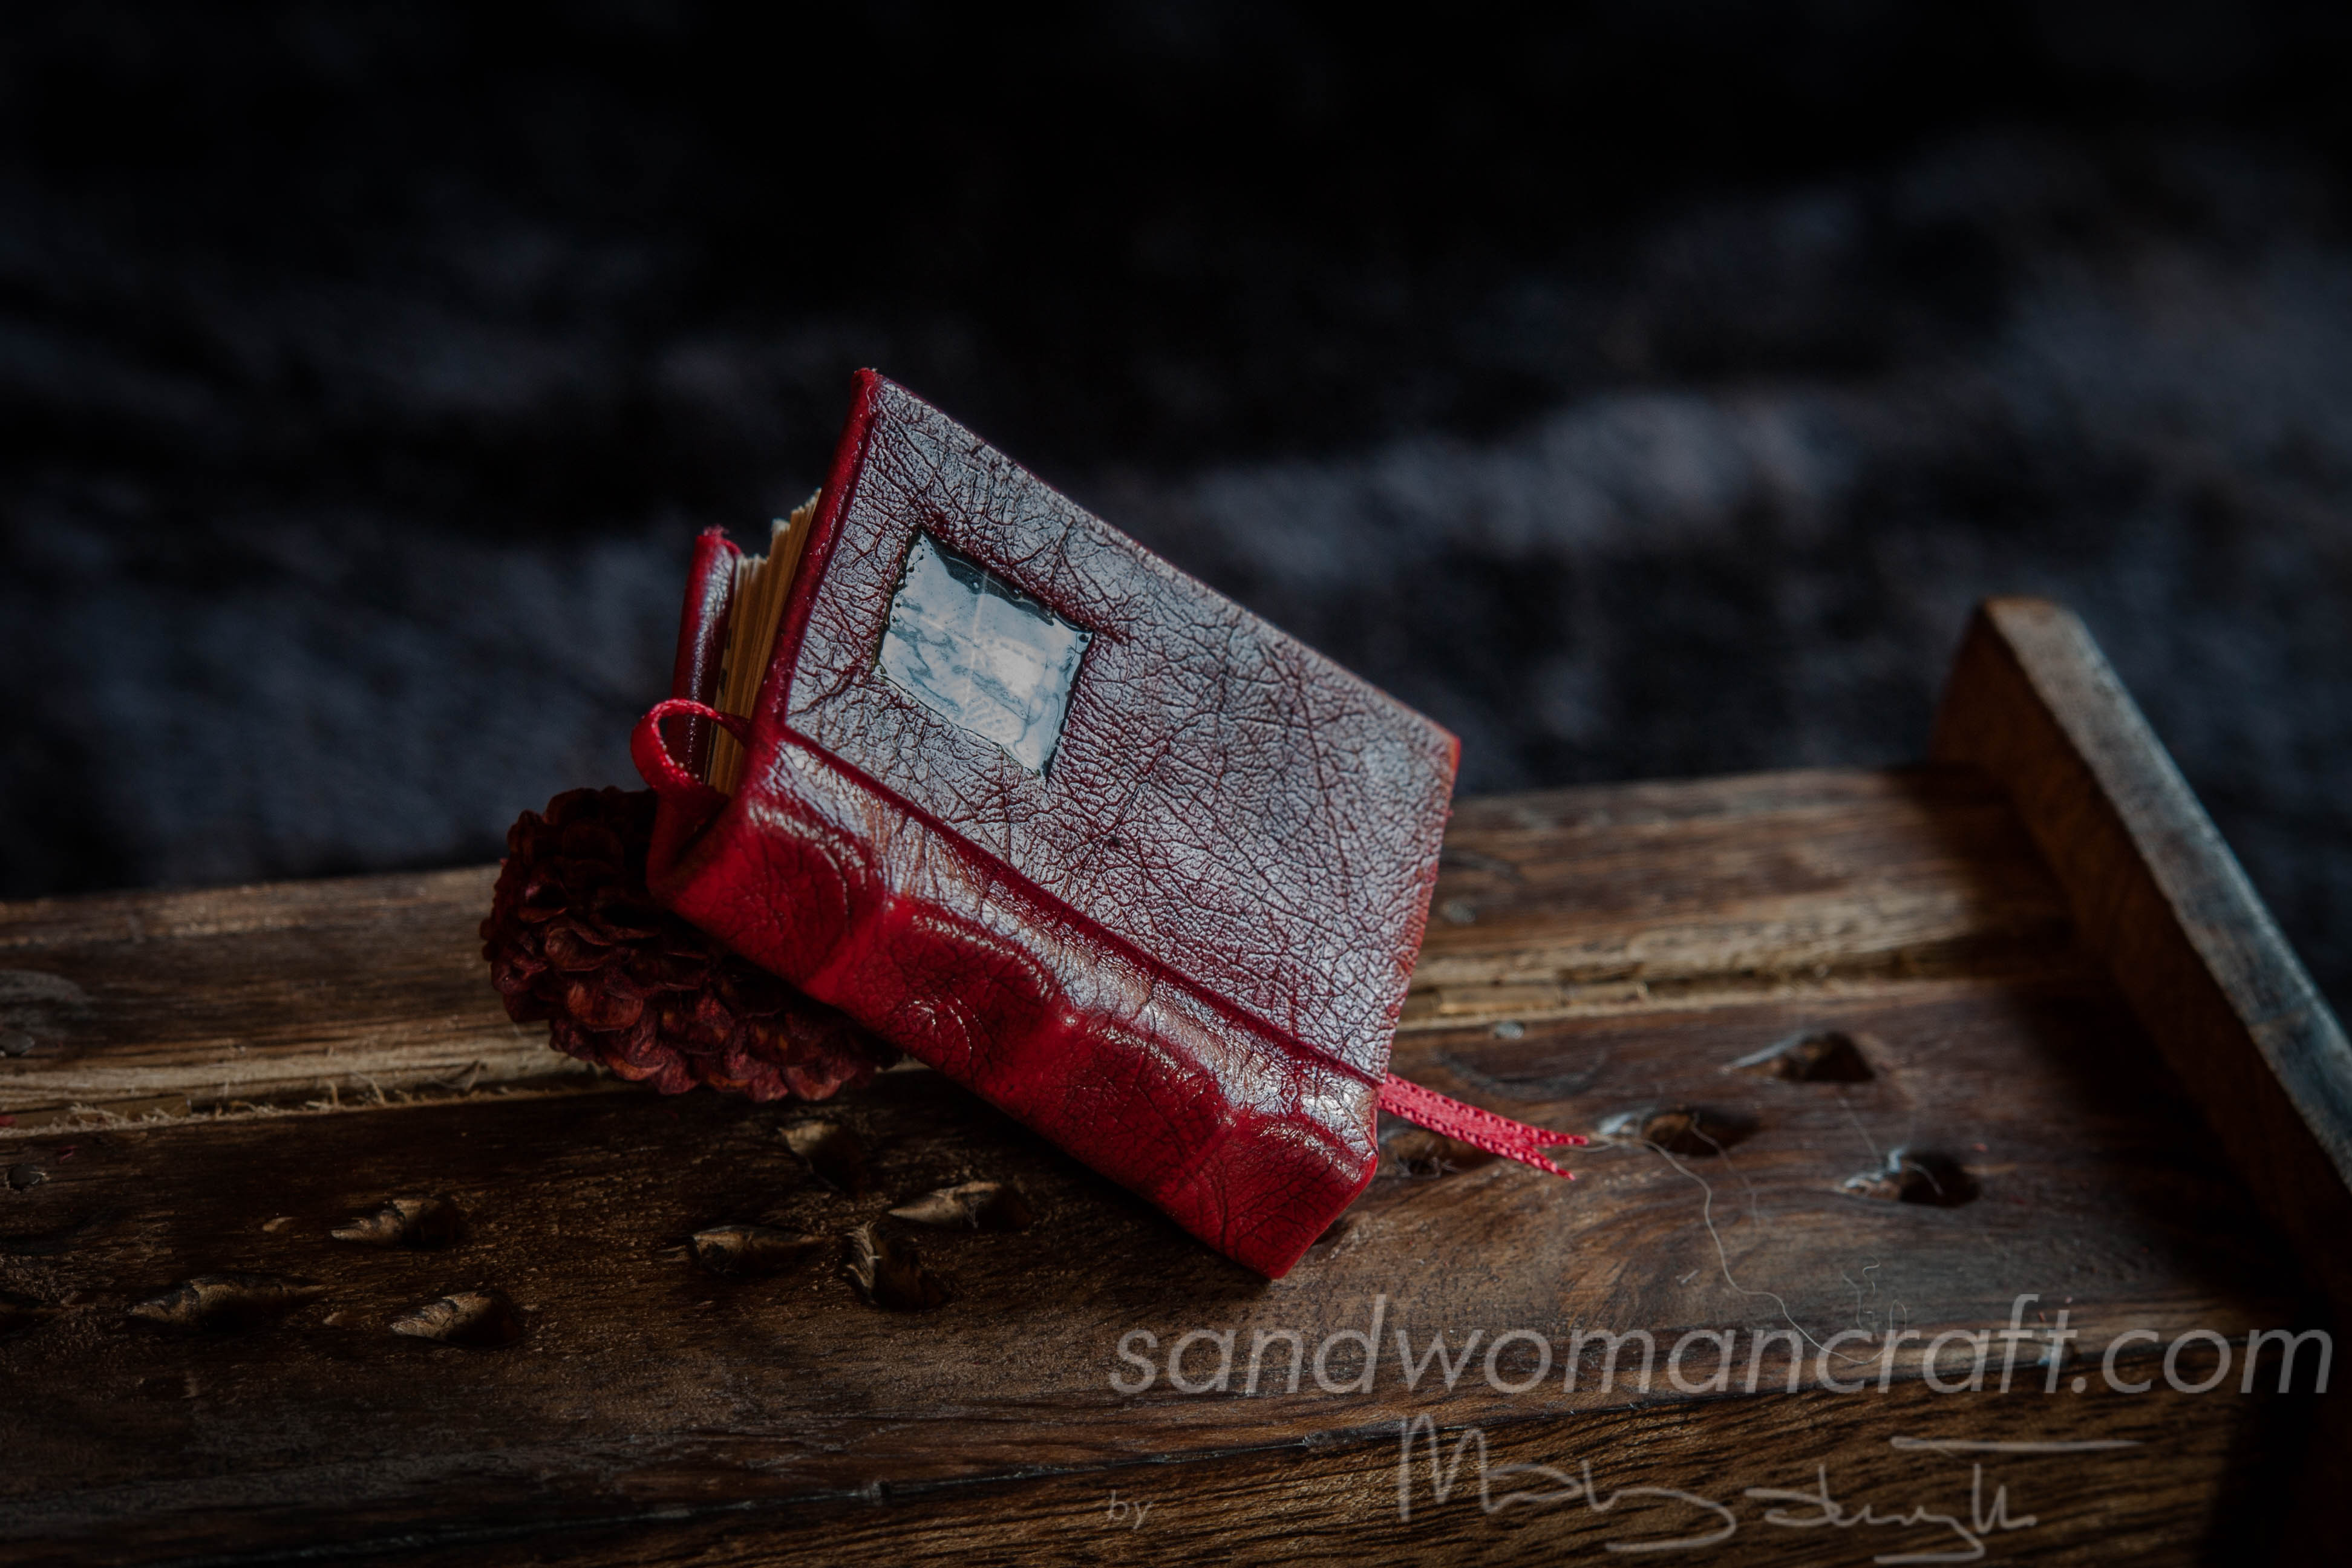 Miniature book of Tralee, Co. Kerry, Ireland